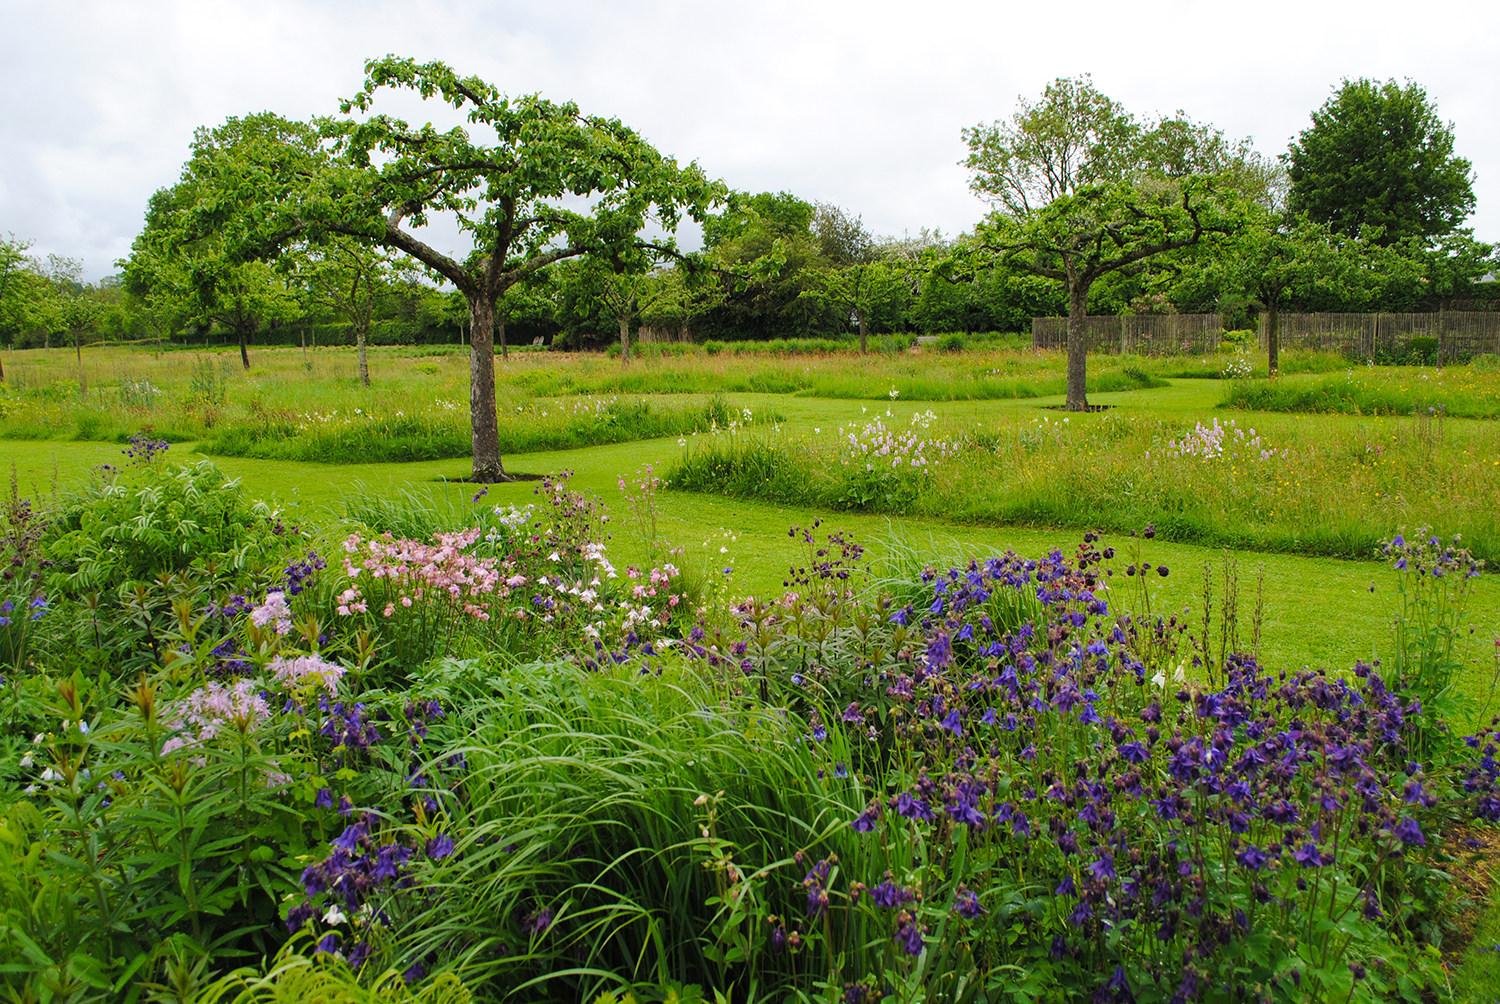 A view of the orchard and the meadow patches. A perennial bed featuring Aquilegia (columbine) is in the foreground.